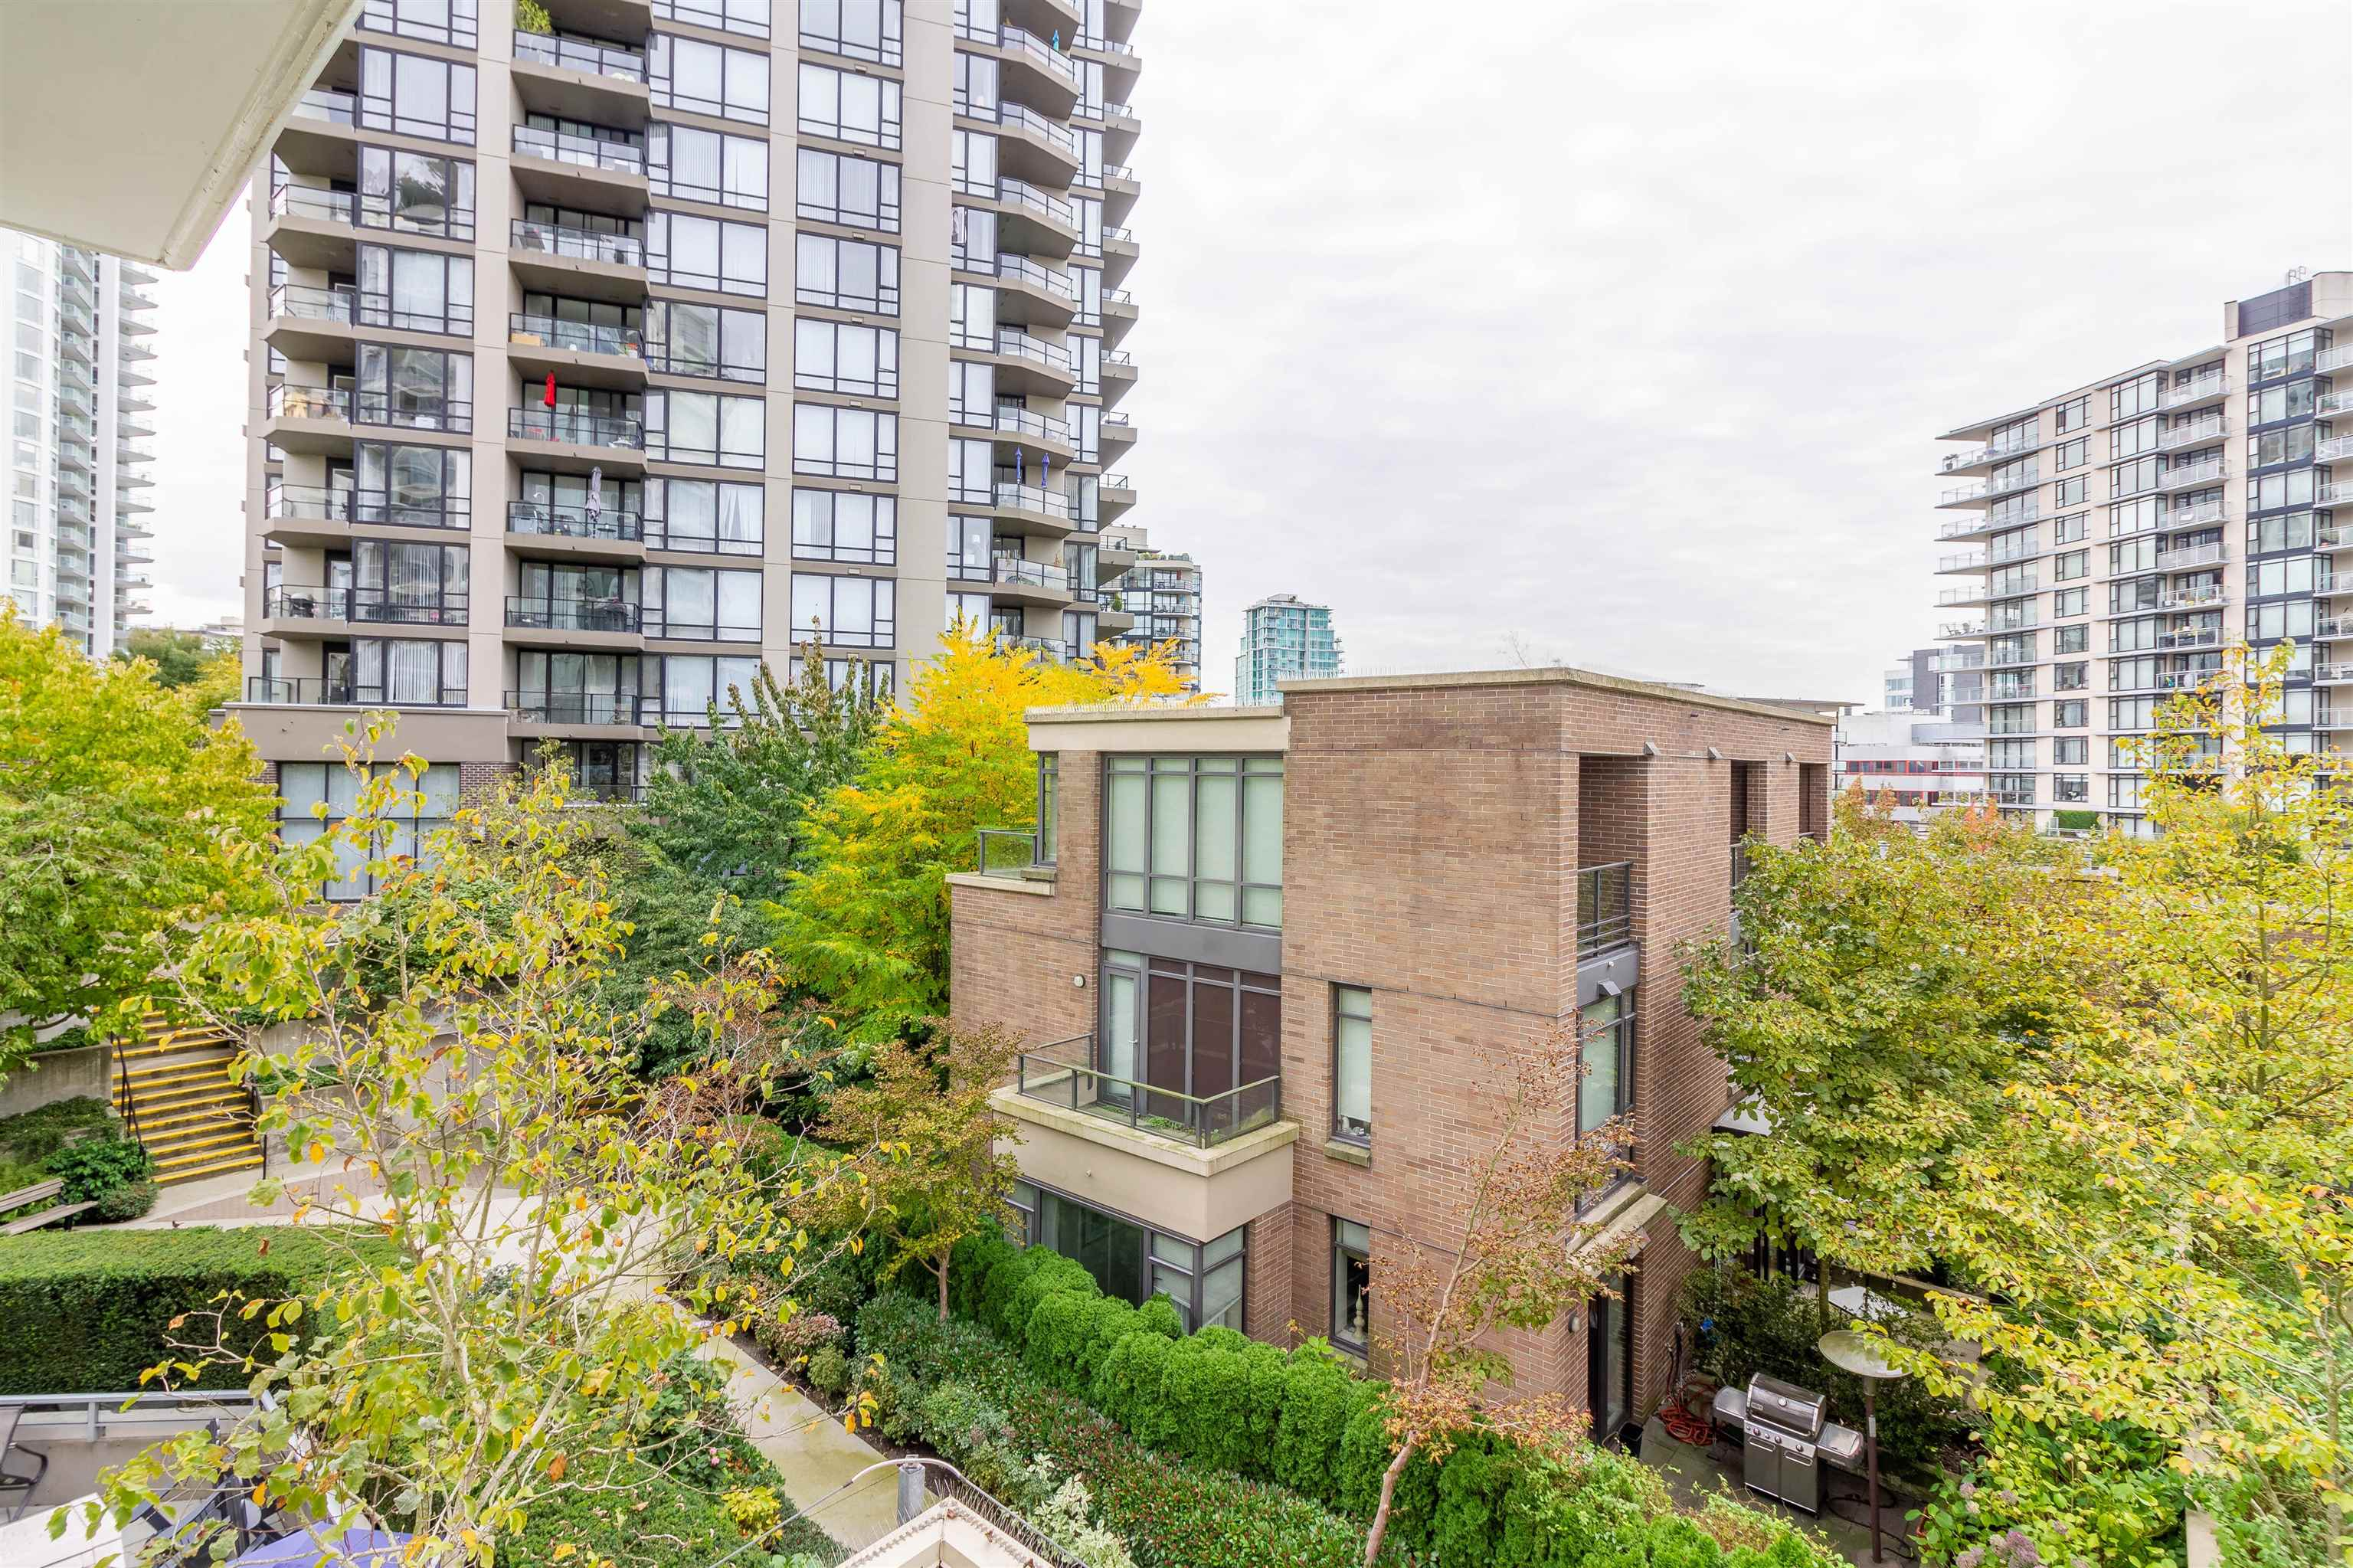 208 175 W 2ND STREET - Lower Lonsdale Apartment/Condo for sale, 1 Bedroom (R2625562) - #17